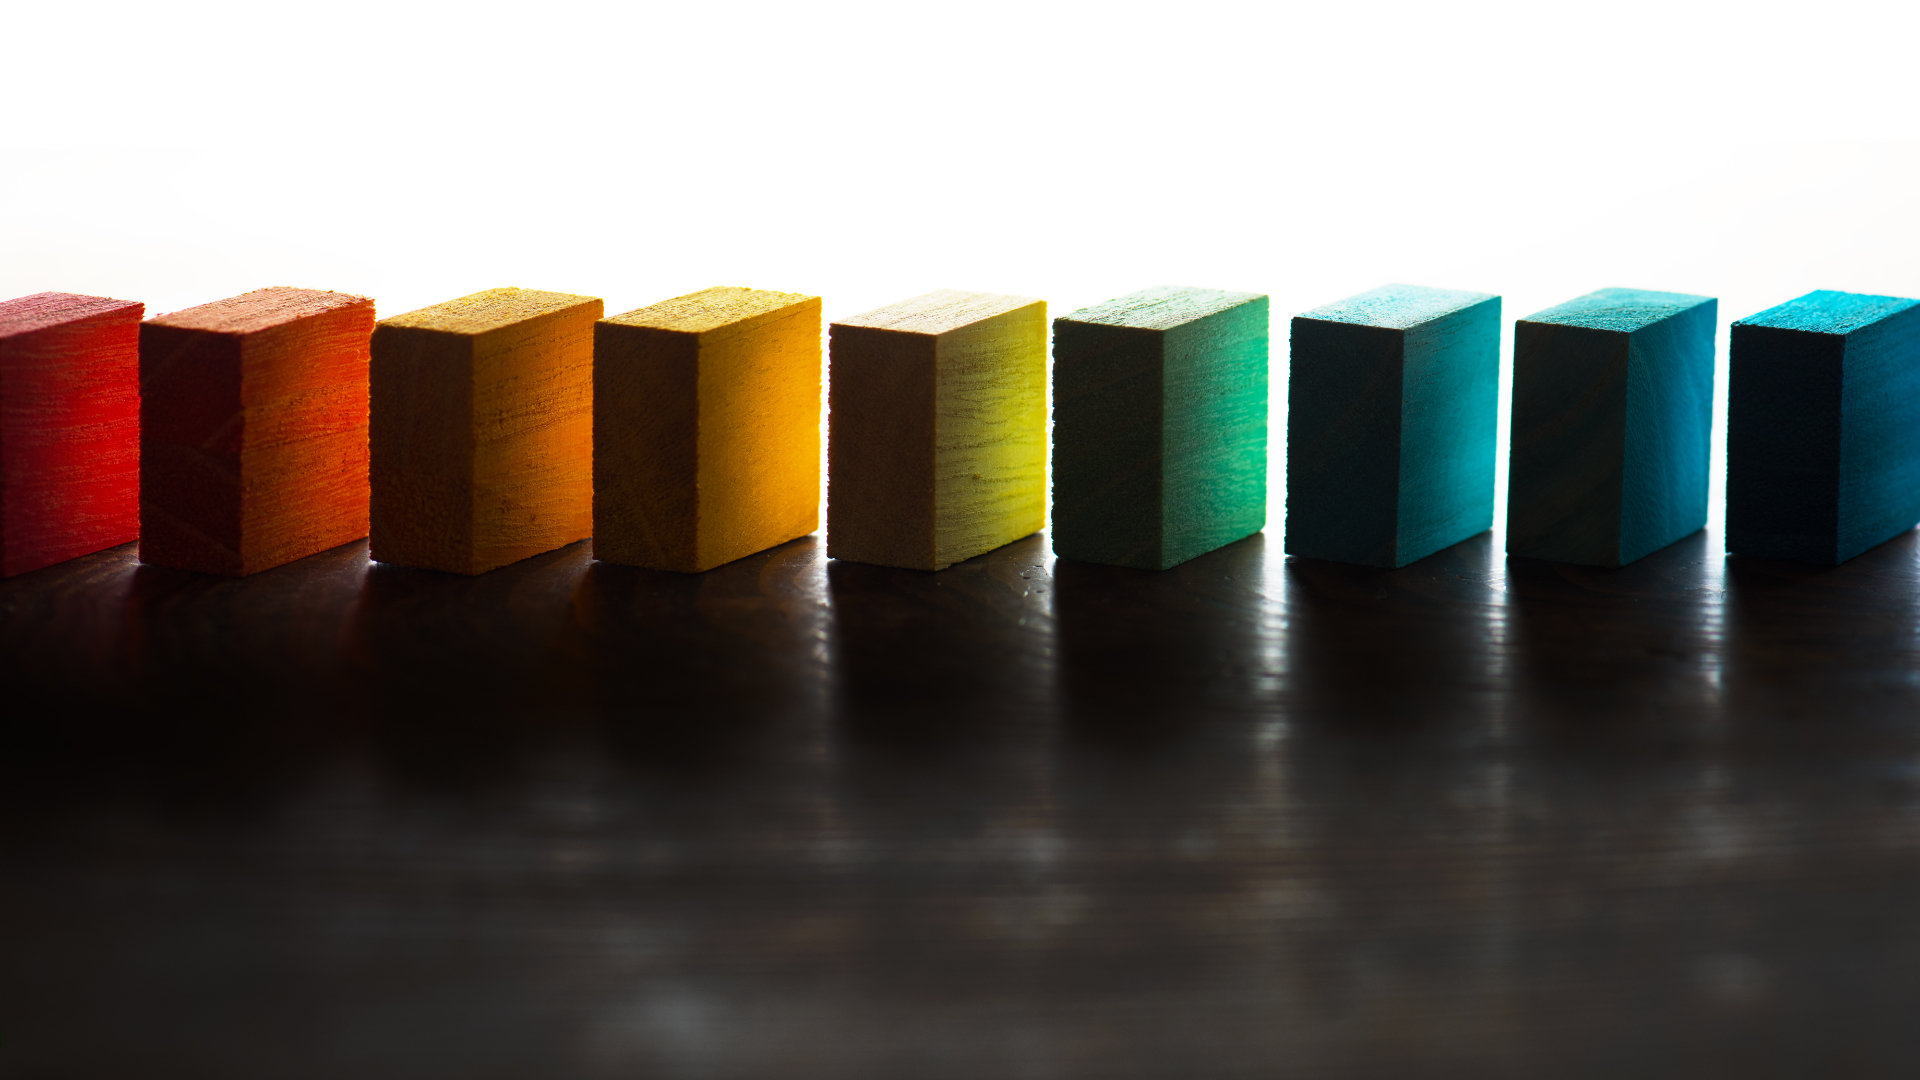 Colored blocks representing categories or types of practice